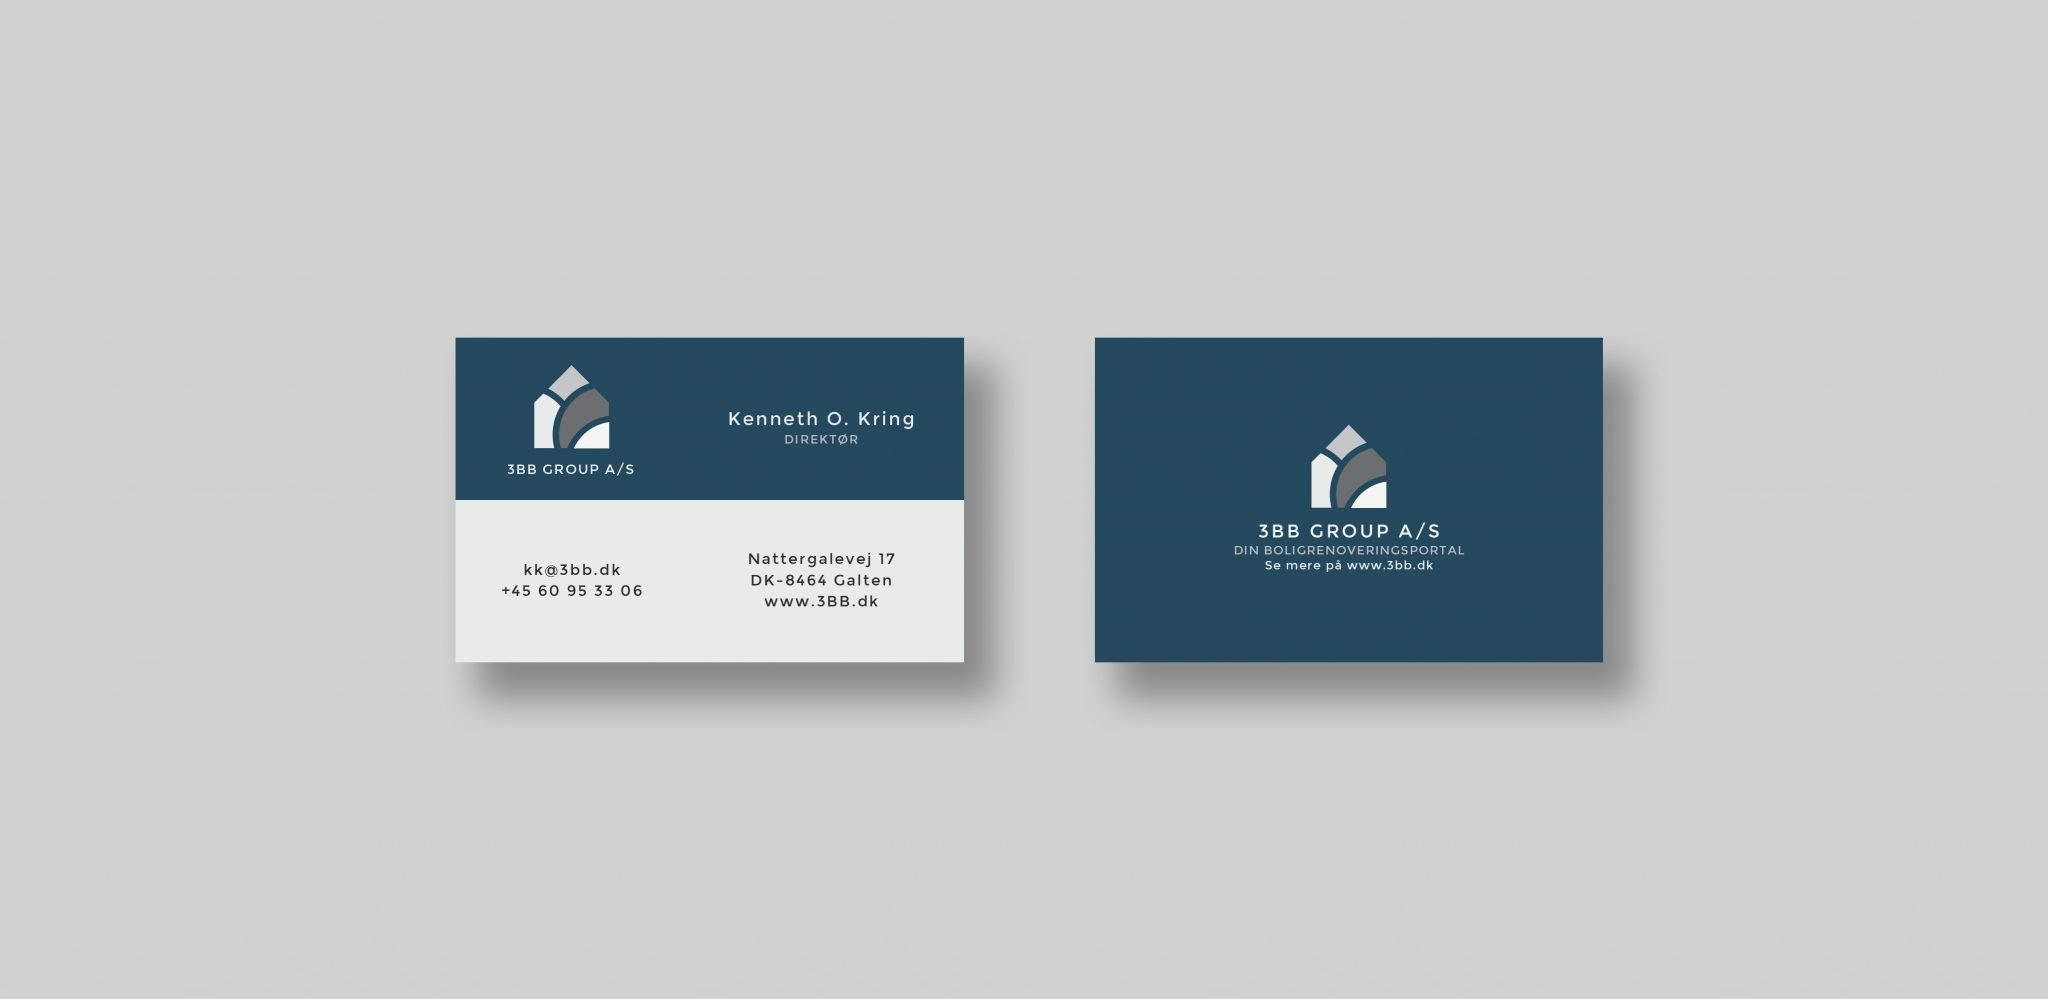 3BB-business-card-1.jpg